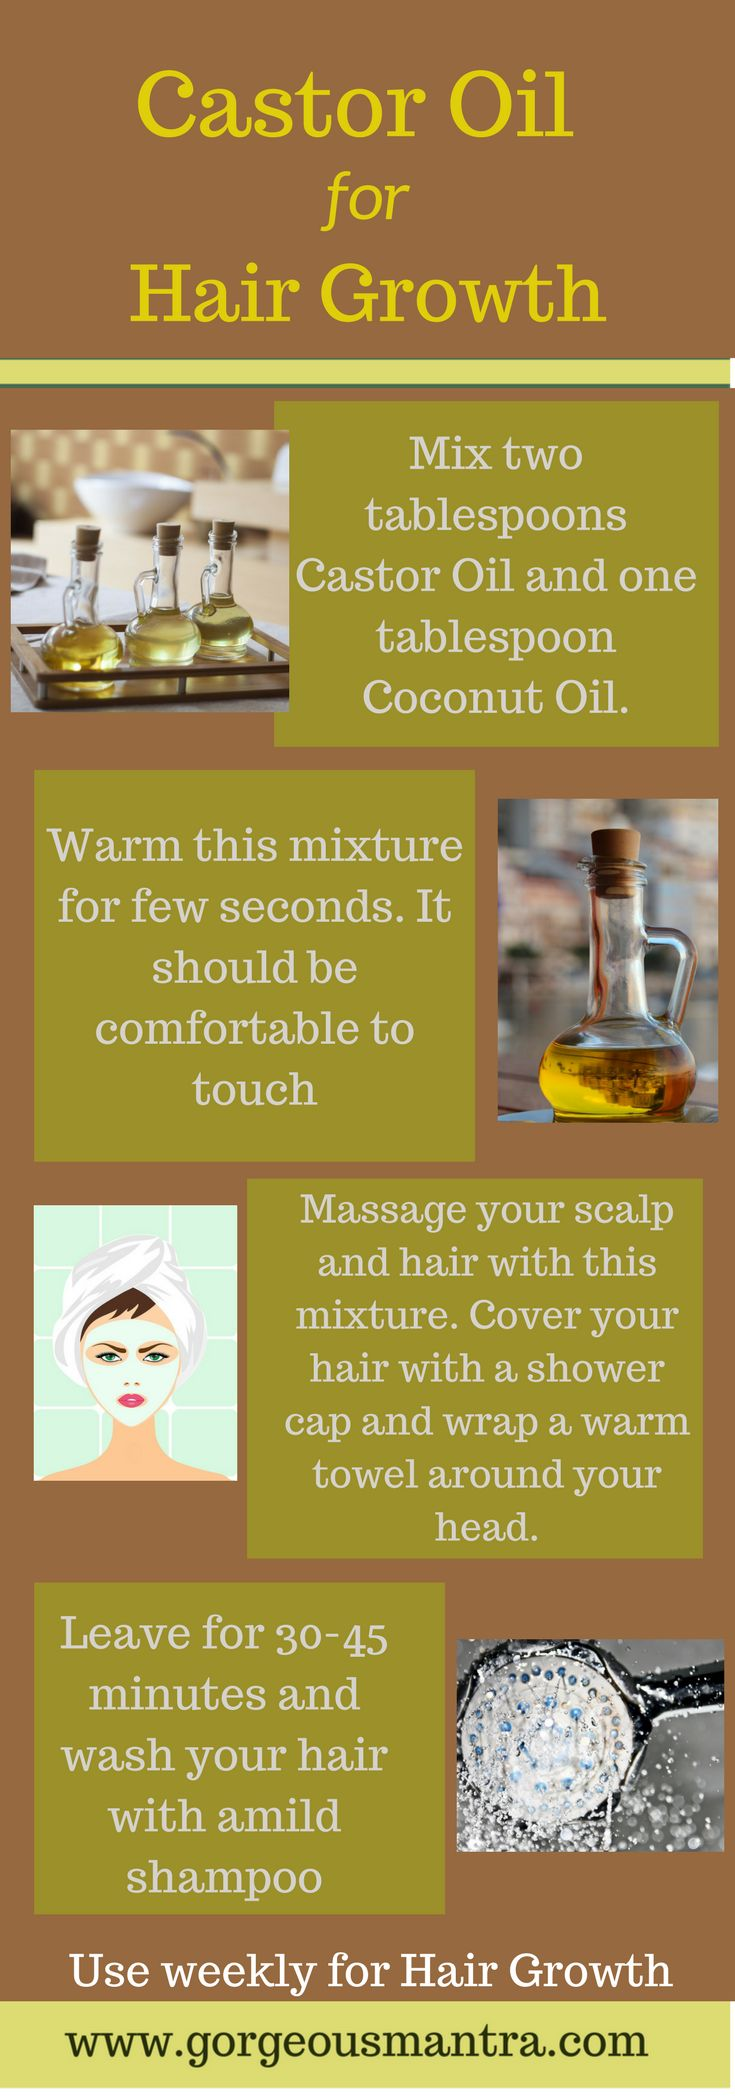 How to use castor oil for hair growth? Use this castor oil treatment for improving hair growth.